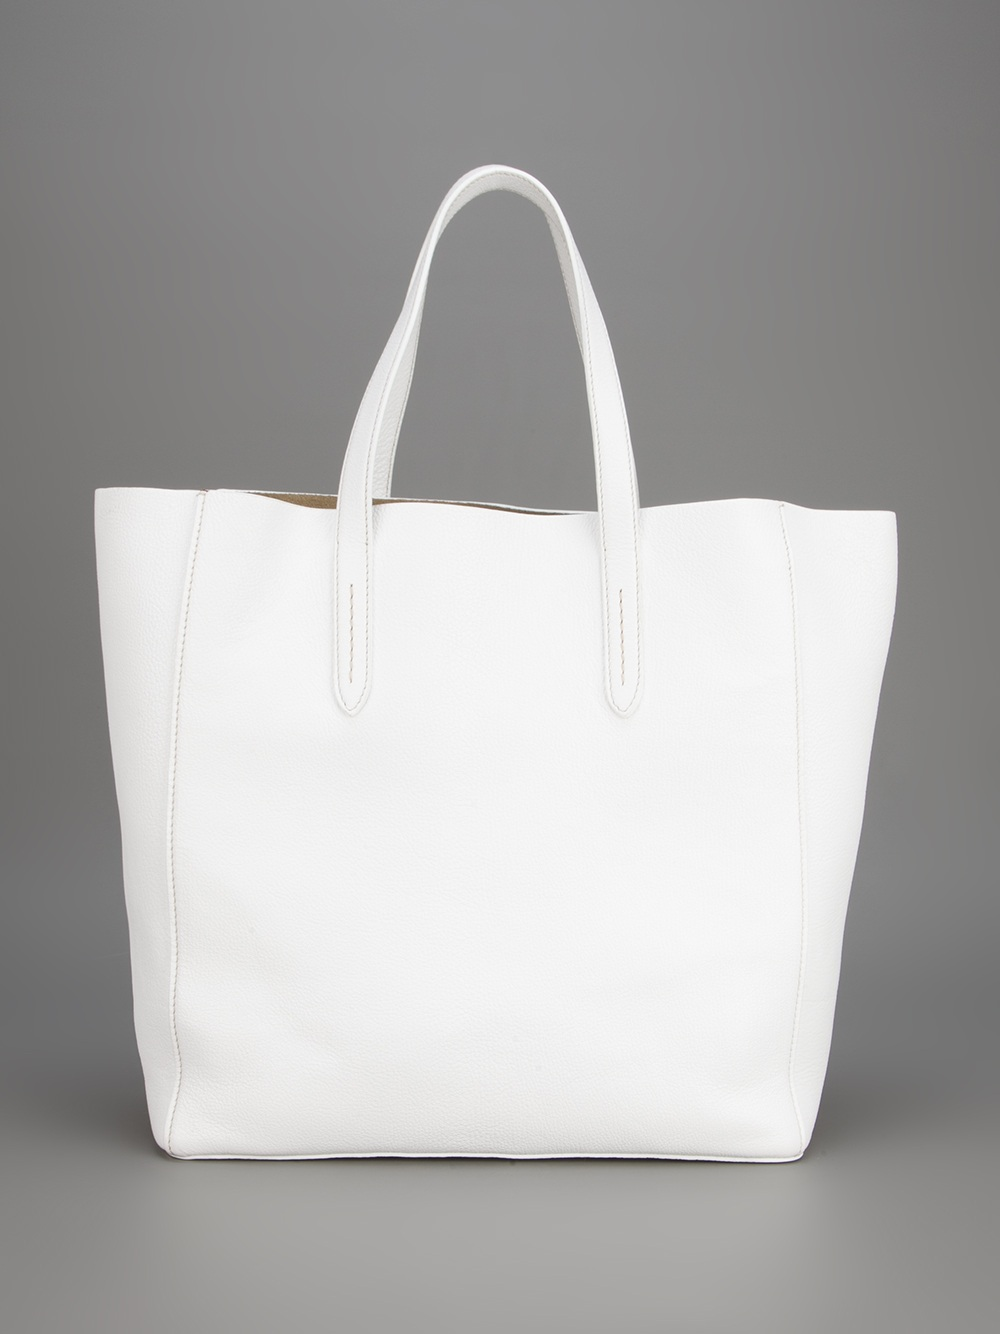 Car Shoe Madras Tote with Pouch in White